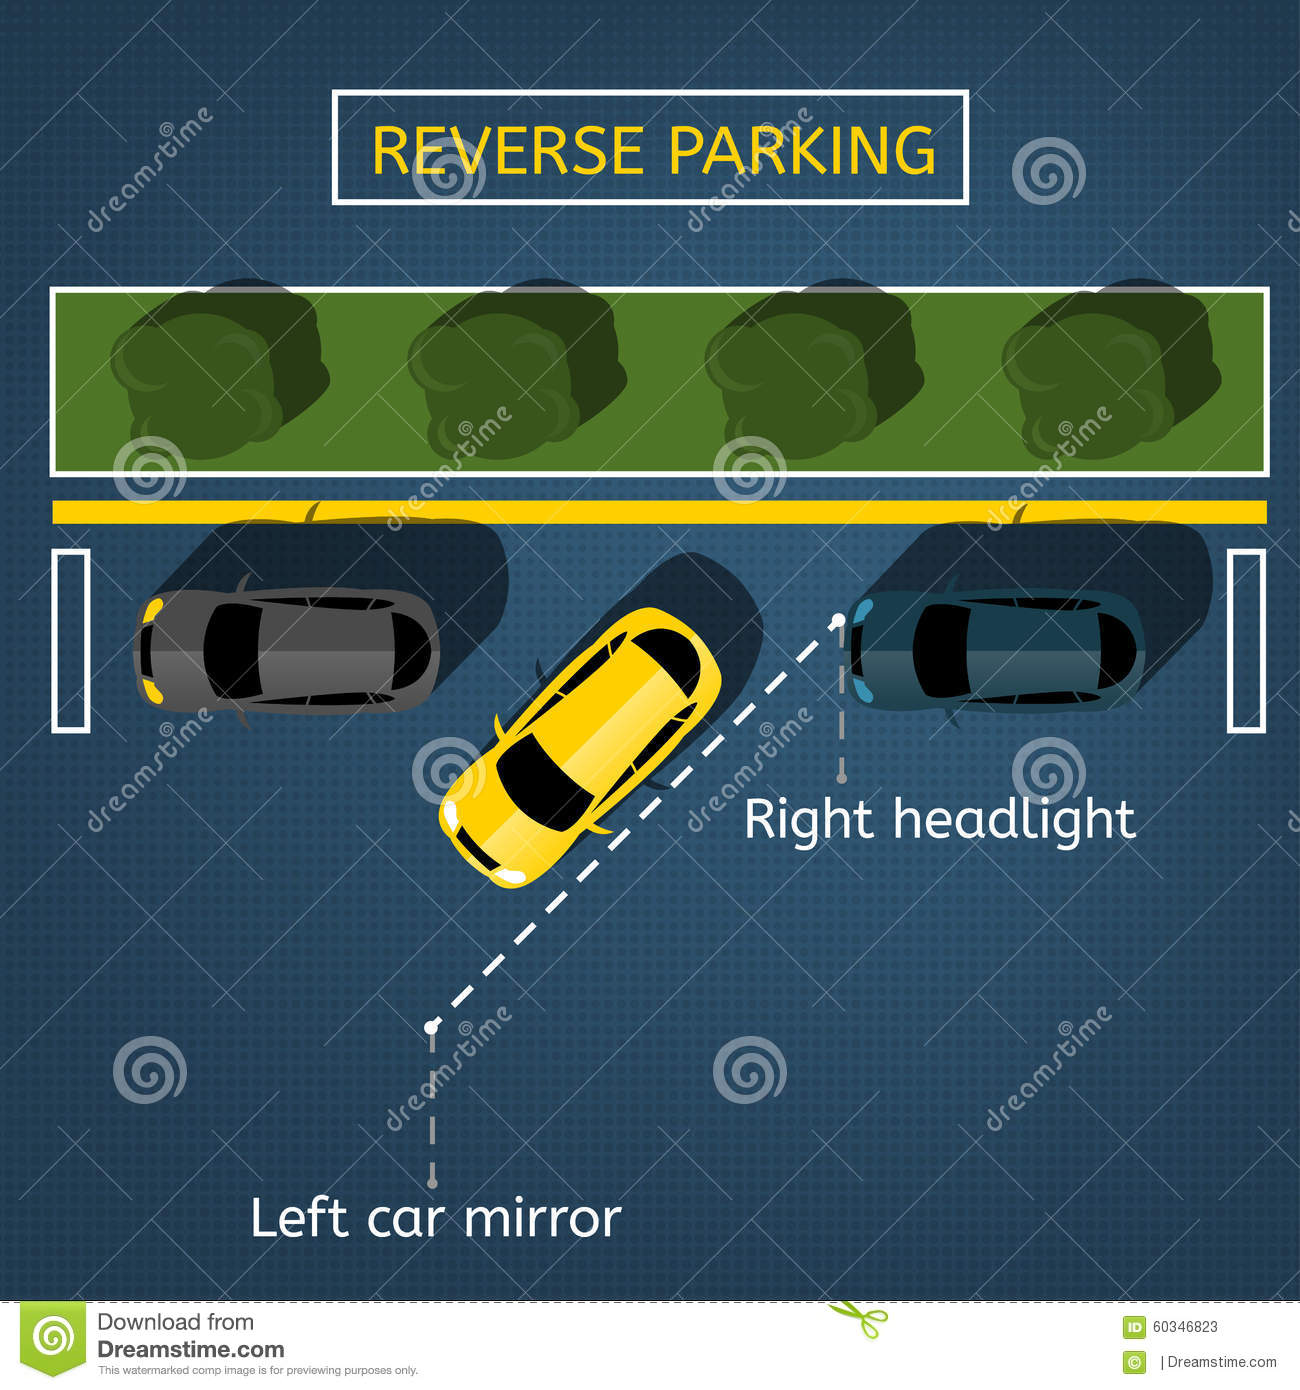 Parking in reverse between cars: the scheme. Parallel parking in reverse 67